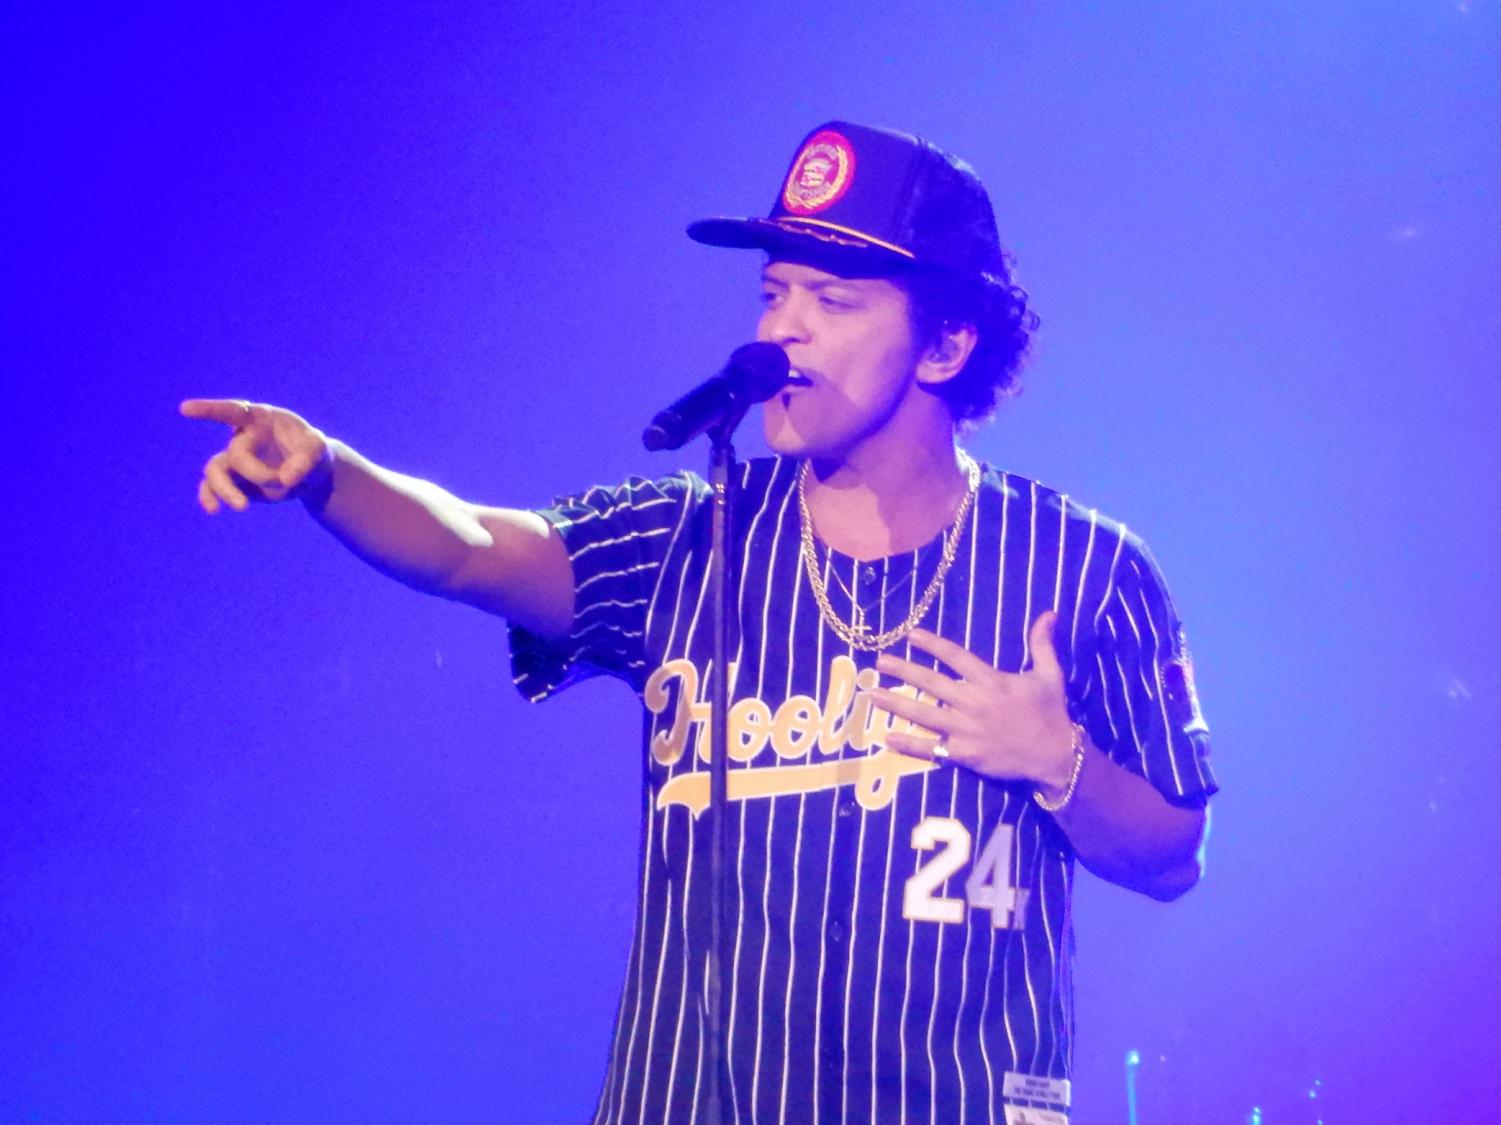 Bruno Mars like during the 24k Magic World Tour (Photo via Wikipedia Commons under the Creative Commons License).